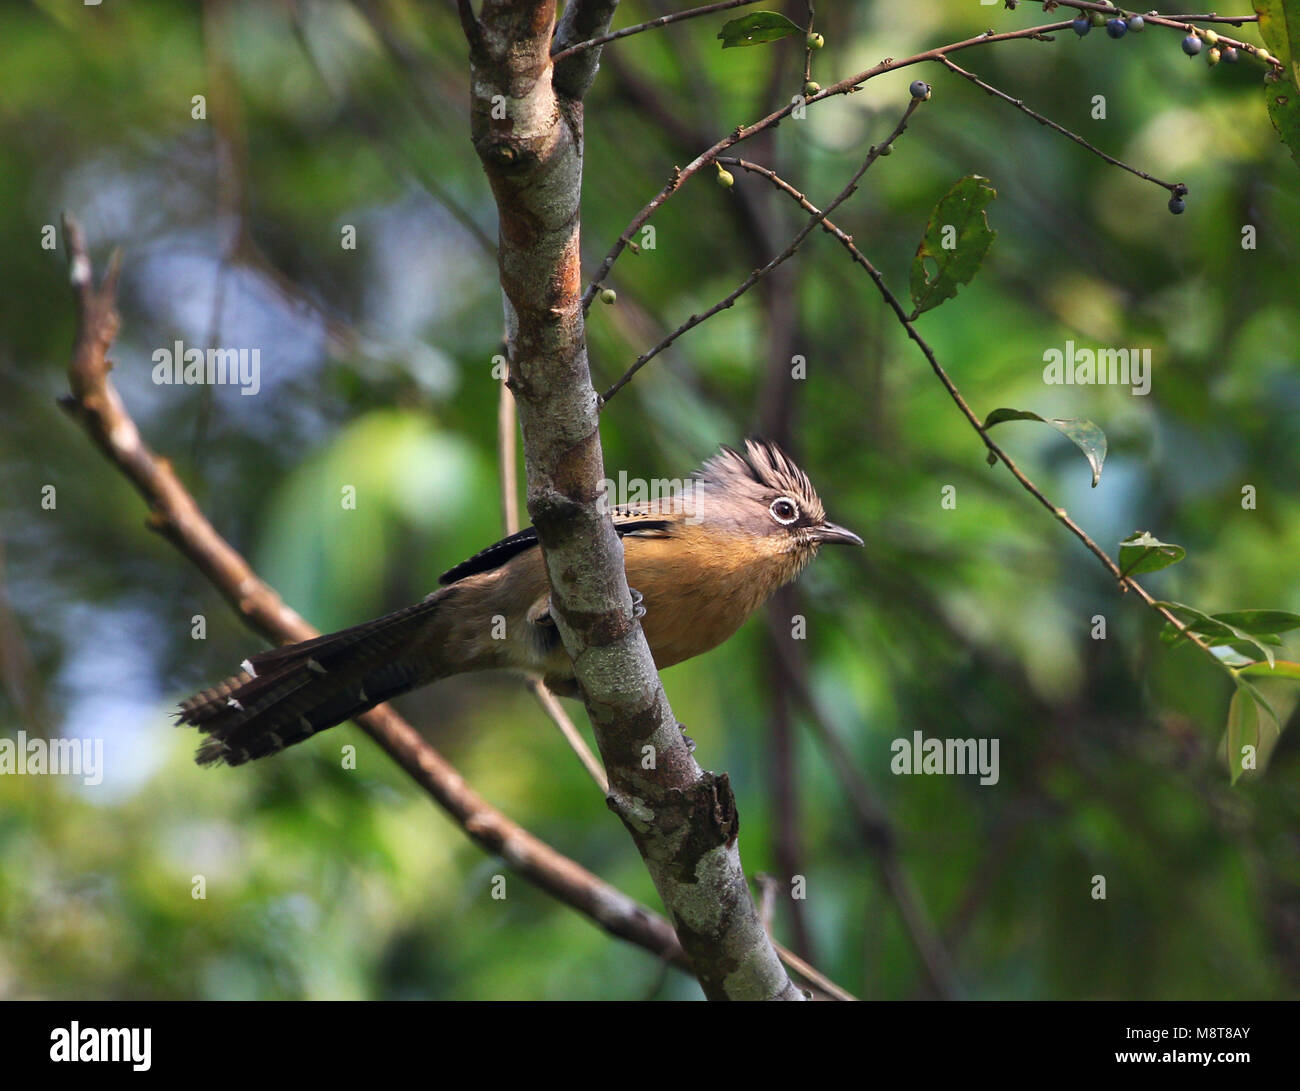 The black-crowned barwing (Actinodura sodangorum) is found in Laos and Vietnam and it is threatened by habitat loss. - Stock Image